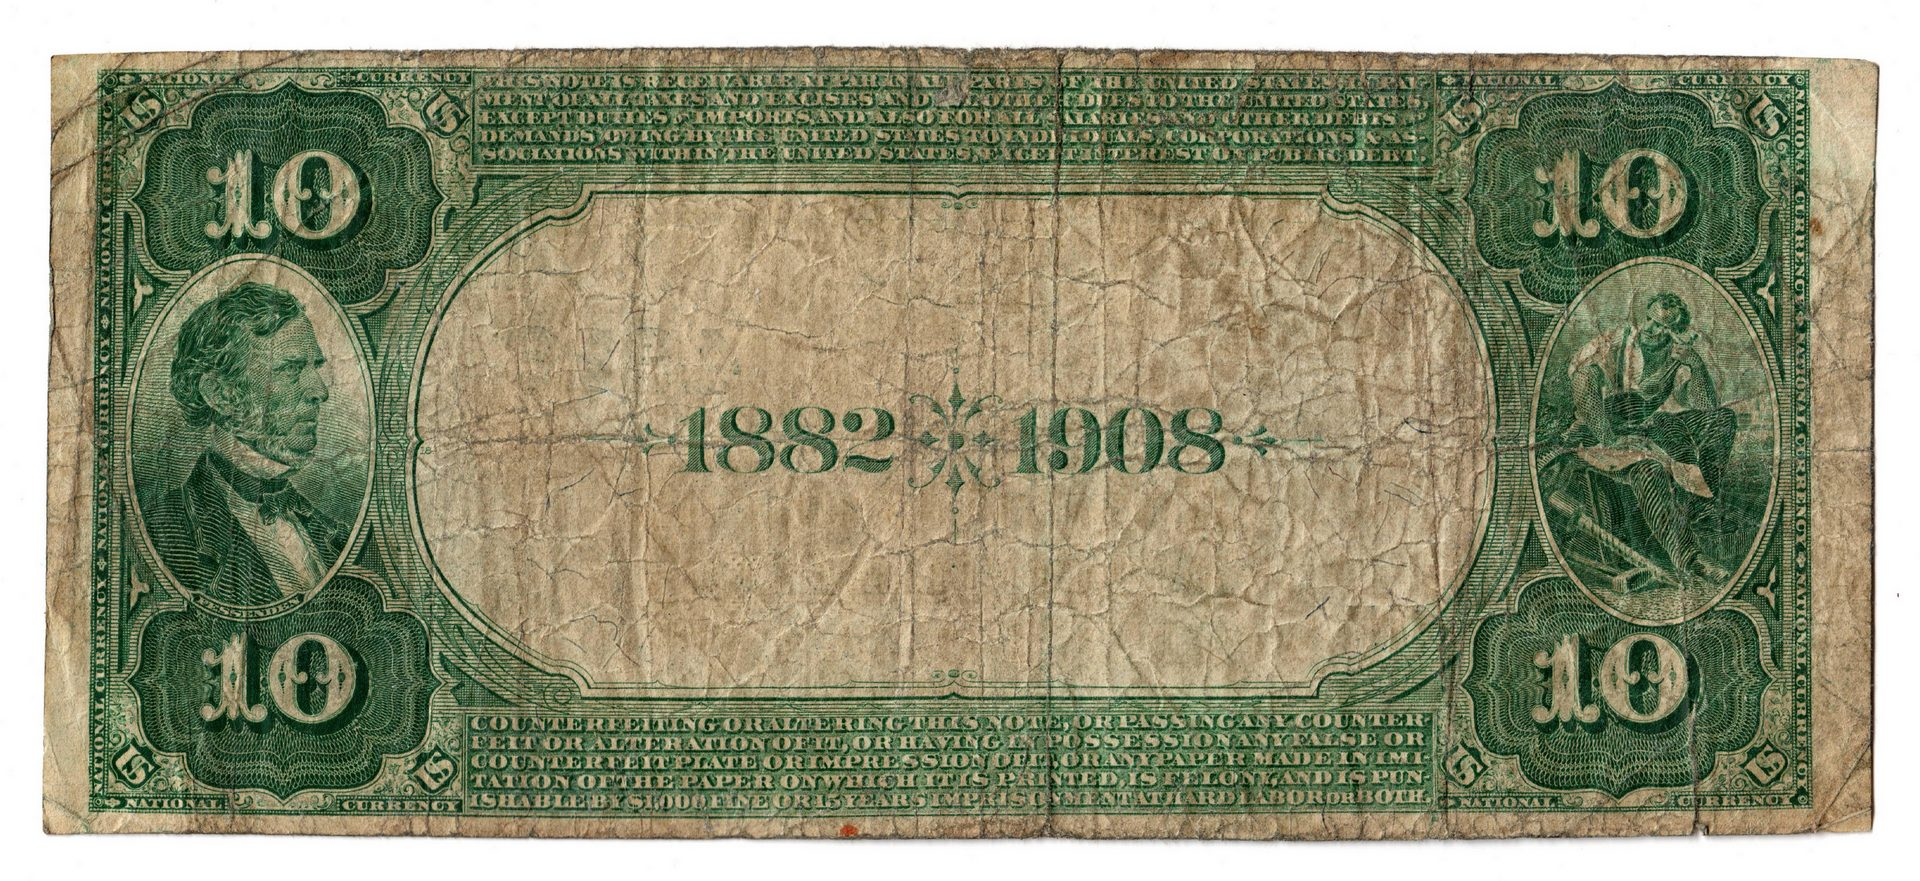 Lot 82: 1882 $10 First National Bank of Monticello Nationa